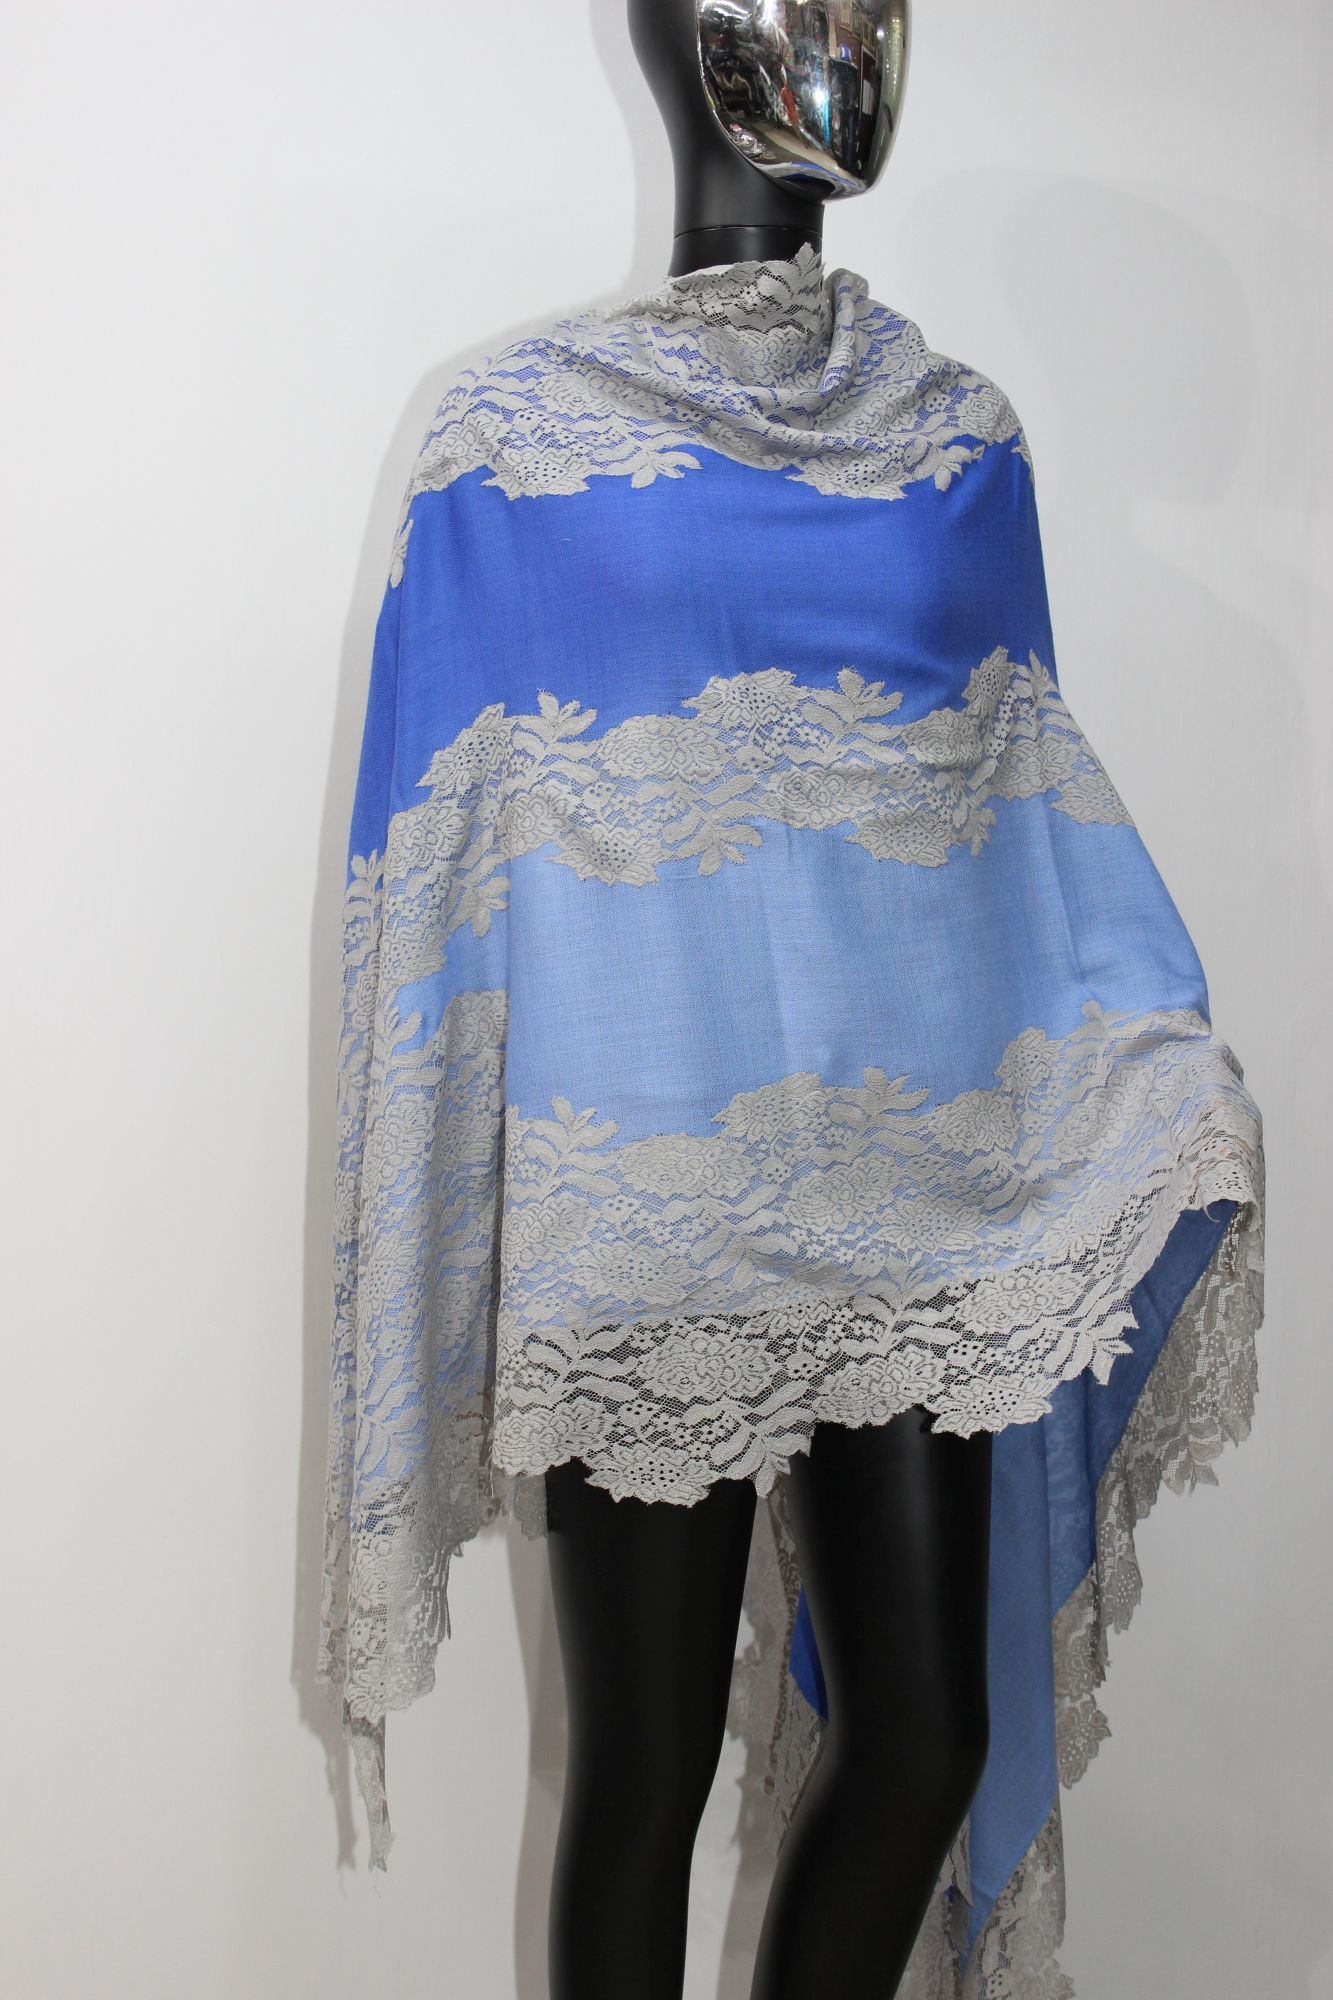 Cashmere Ombre Shaded Lace Shawls , Size-90x210cm